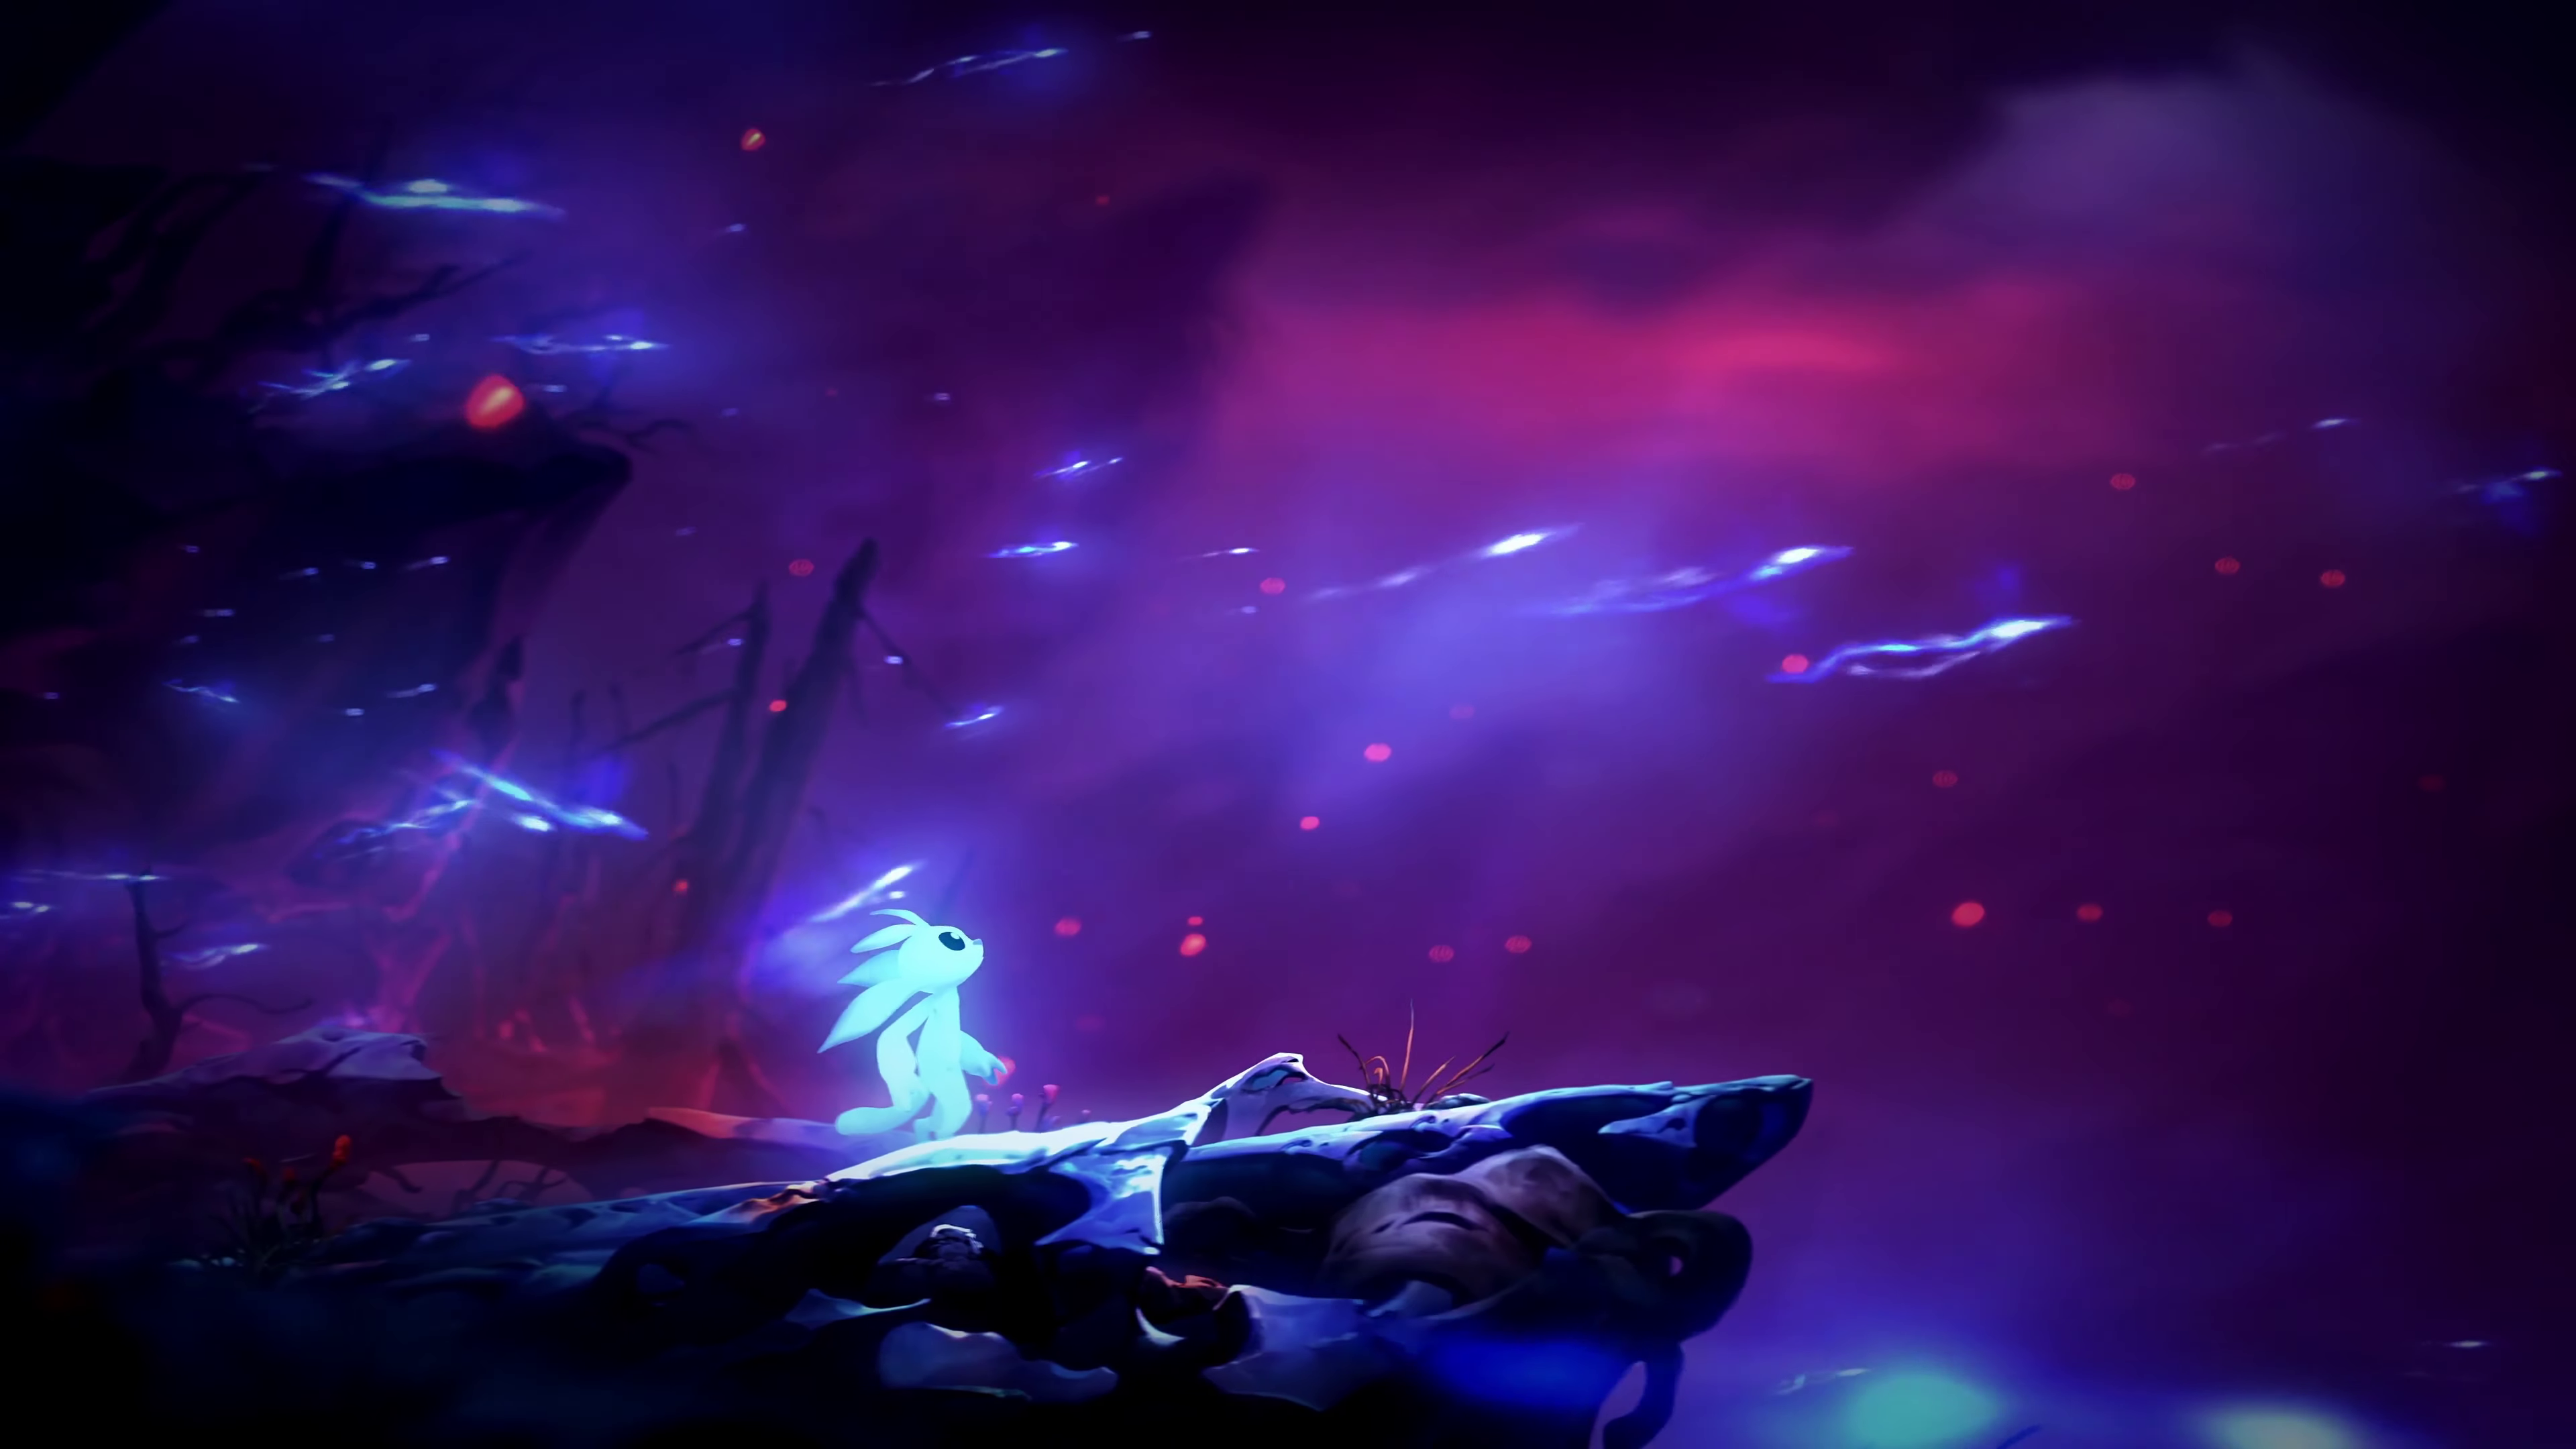 a white figure on a rock ledge in Ori and the Will of the Wisps